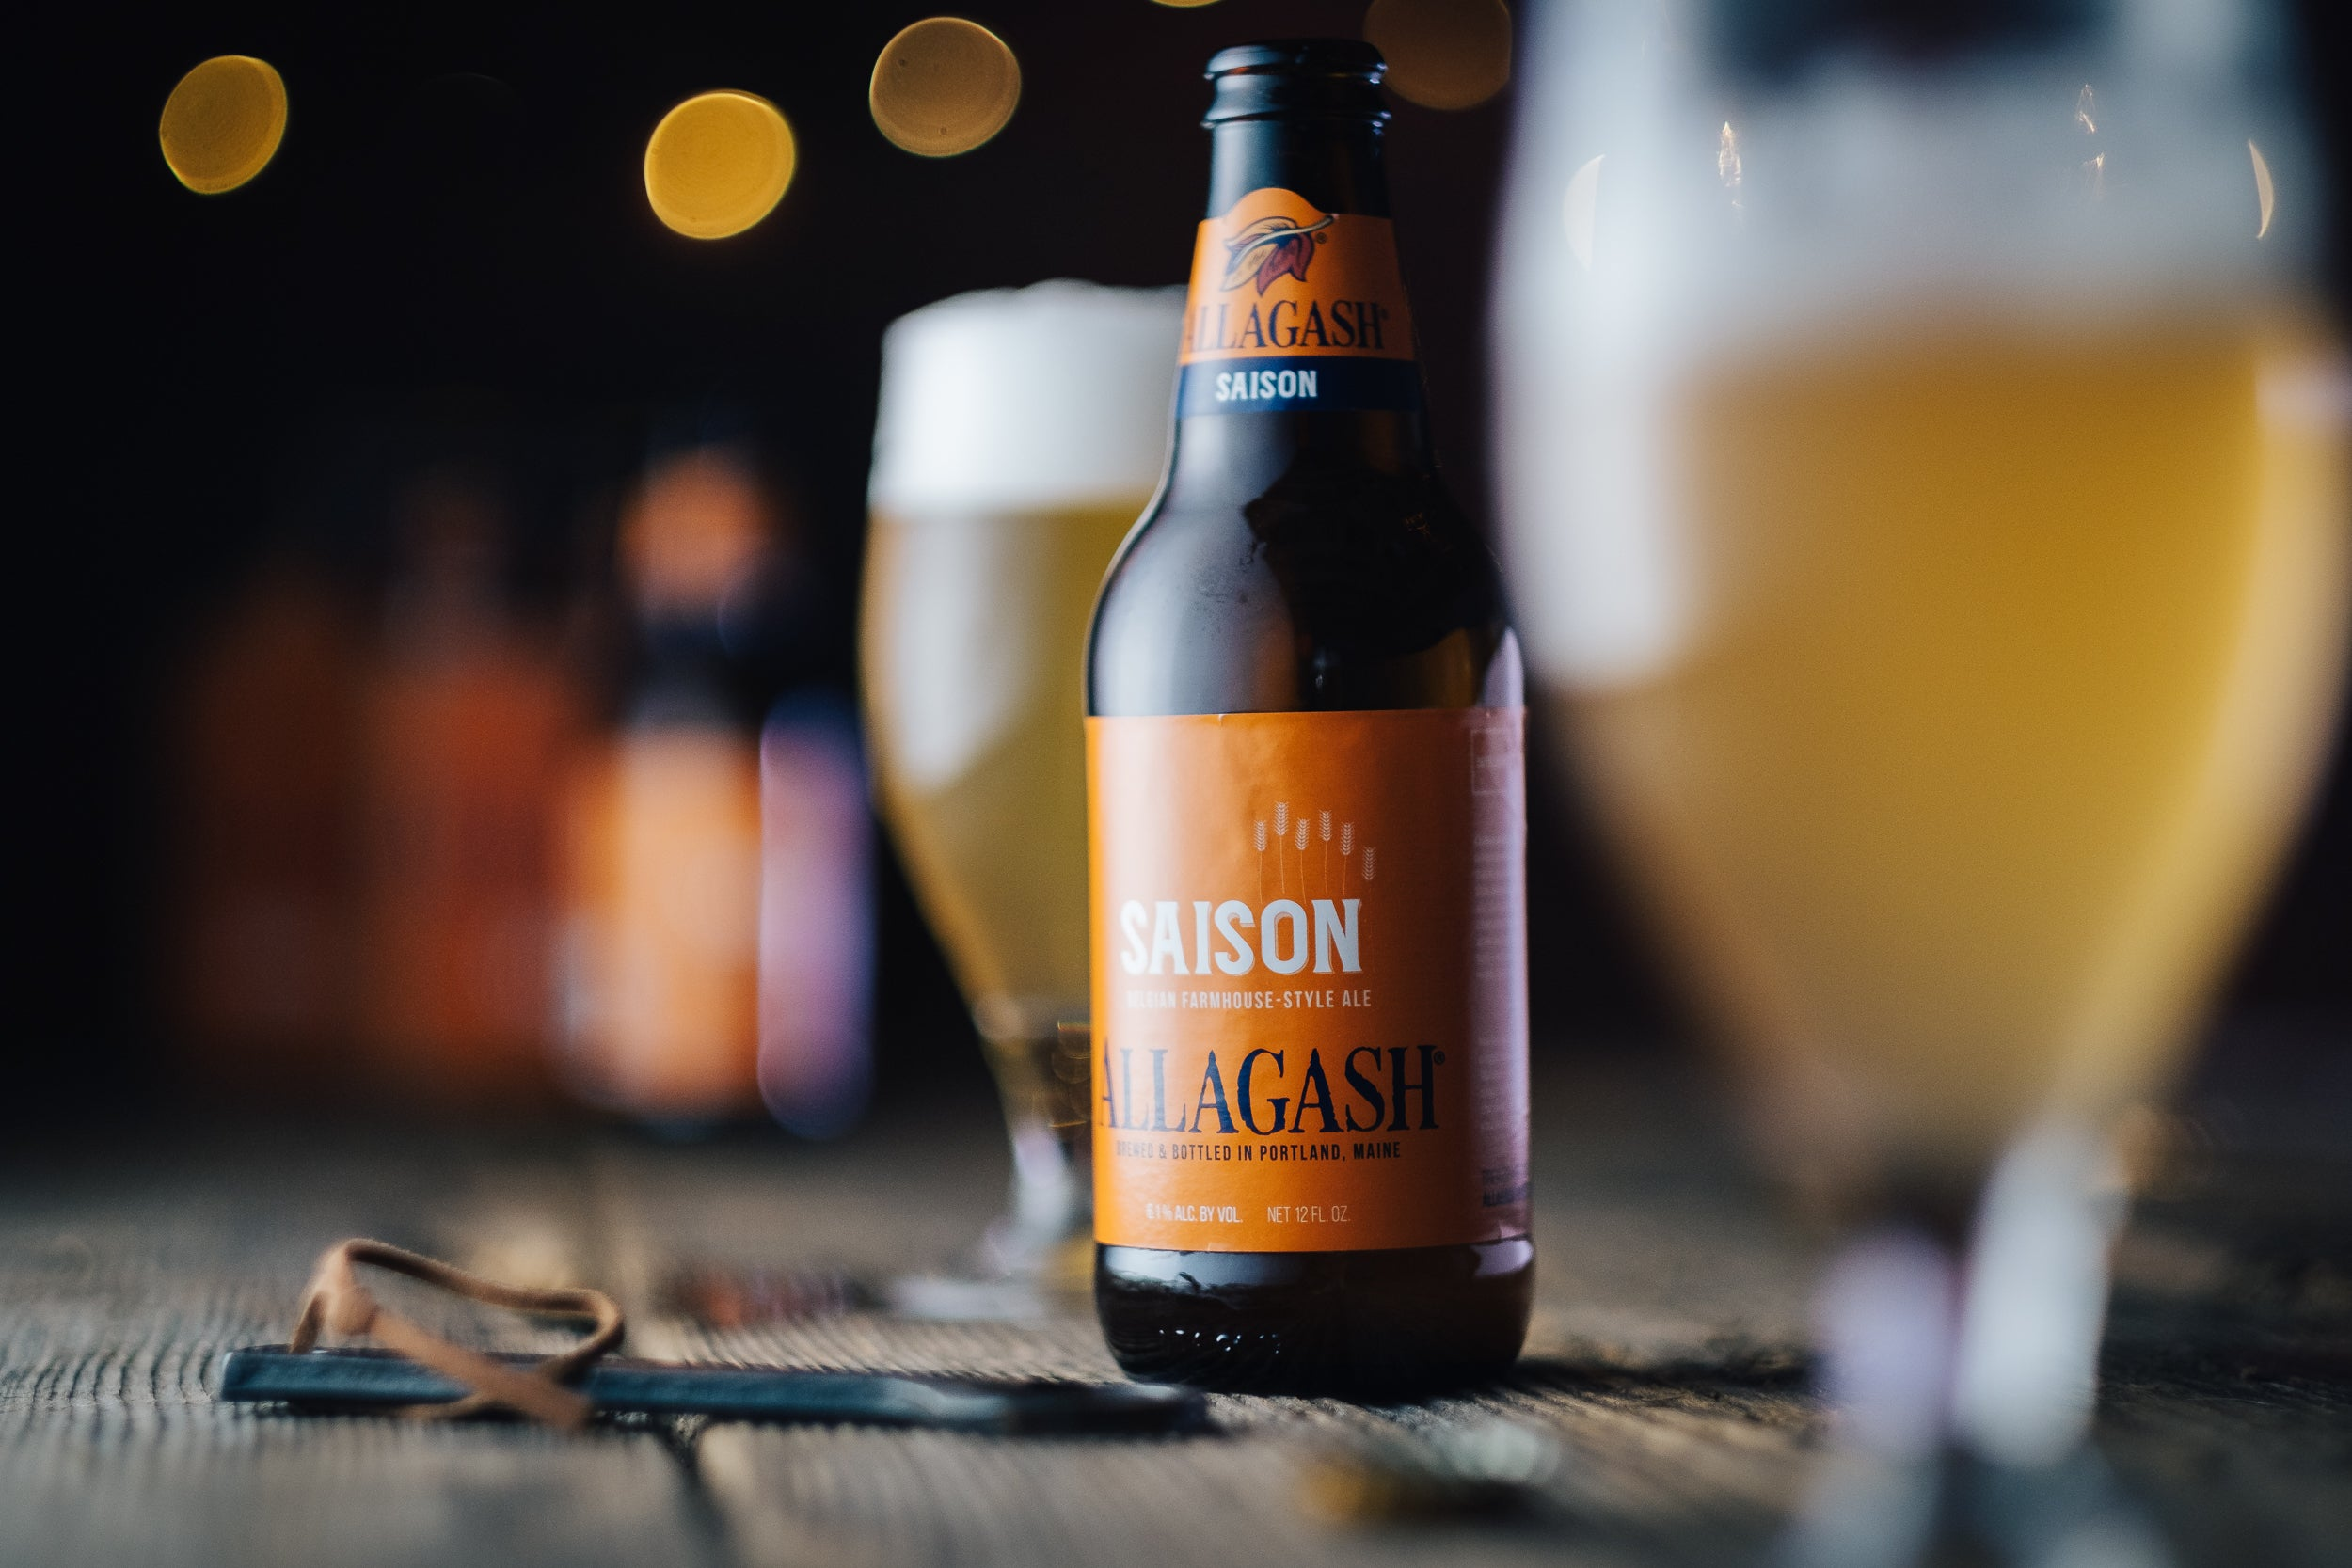 Allagash Saison - low carb craft beer - beer and diabetes - type 1 diabetes beer - type 2 diabetes beer - craft beer low carb